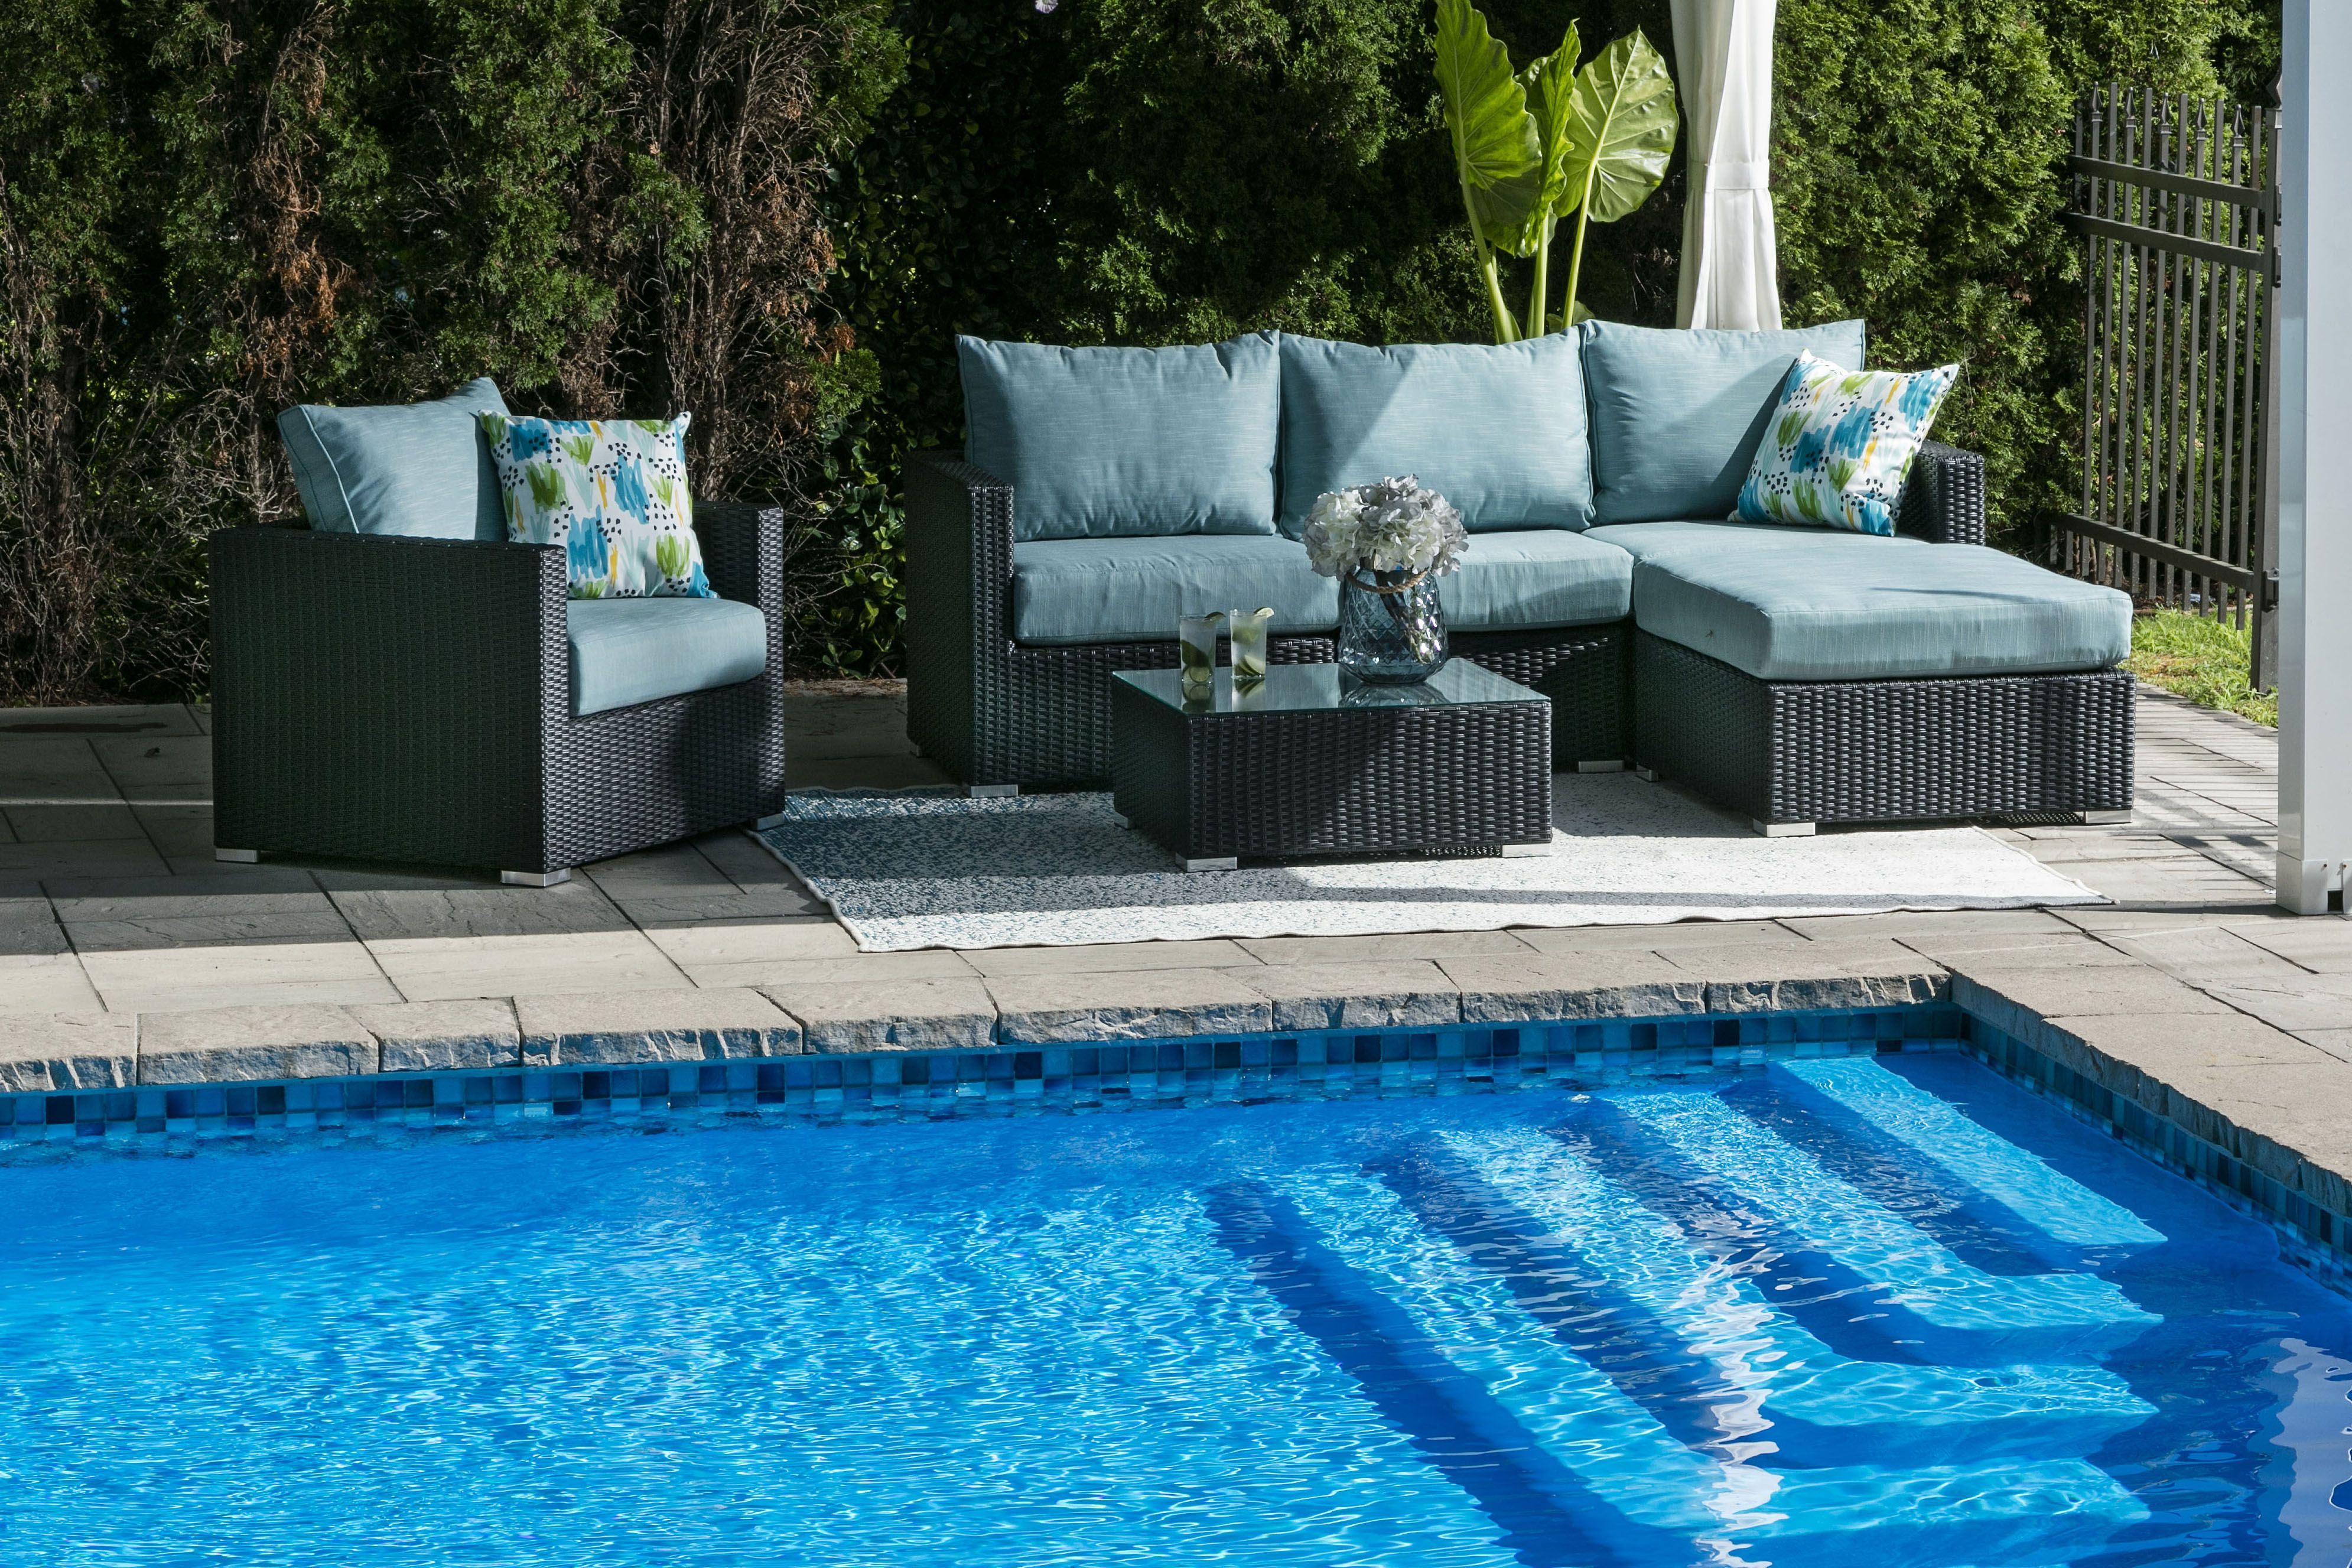 Sectionnel Exterieur Milan Outdoor Sectional Outdoor Furniture Outdoor Decor Outdoor Sectional Sofa